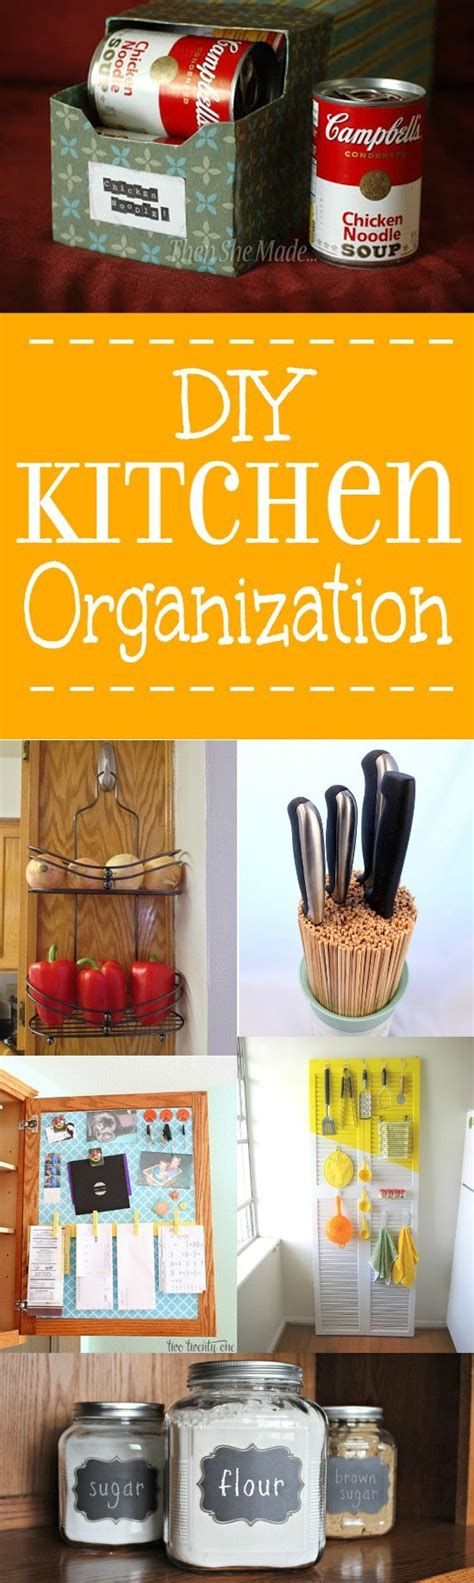 diy kitchen organization ideas 24 diy kitchen organization ideas the gracious